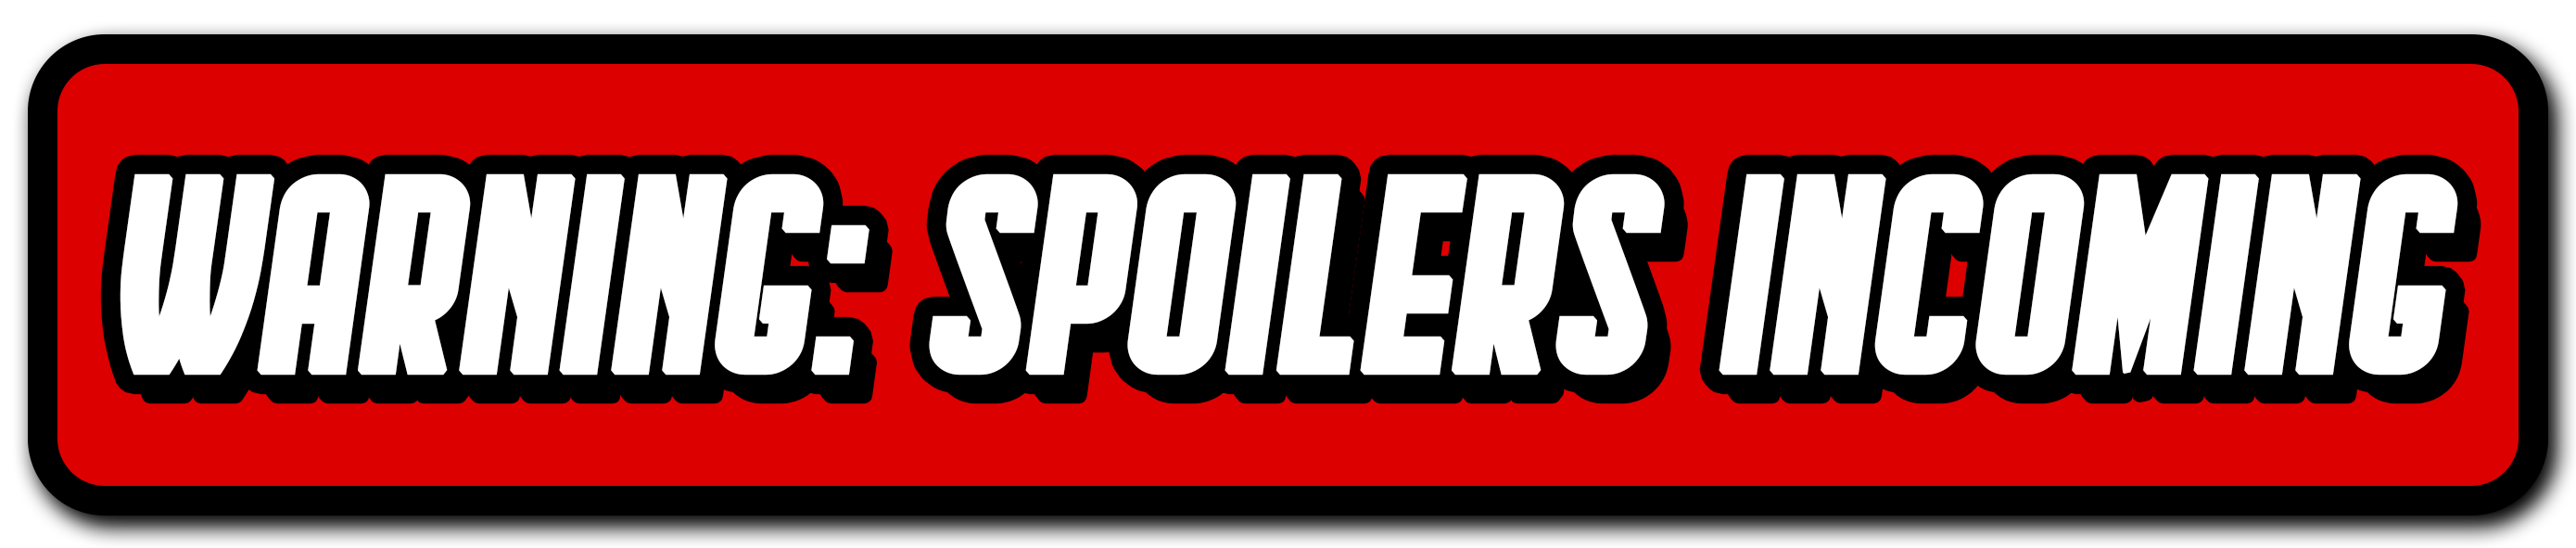 Spoilers-Warning-Small-Screen